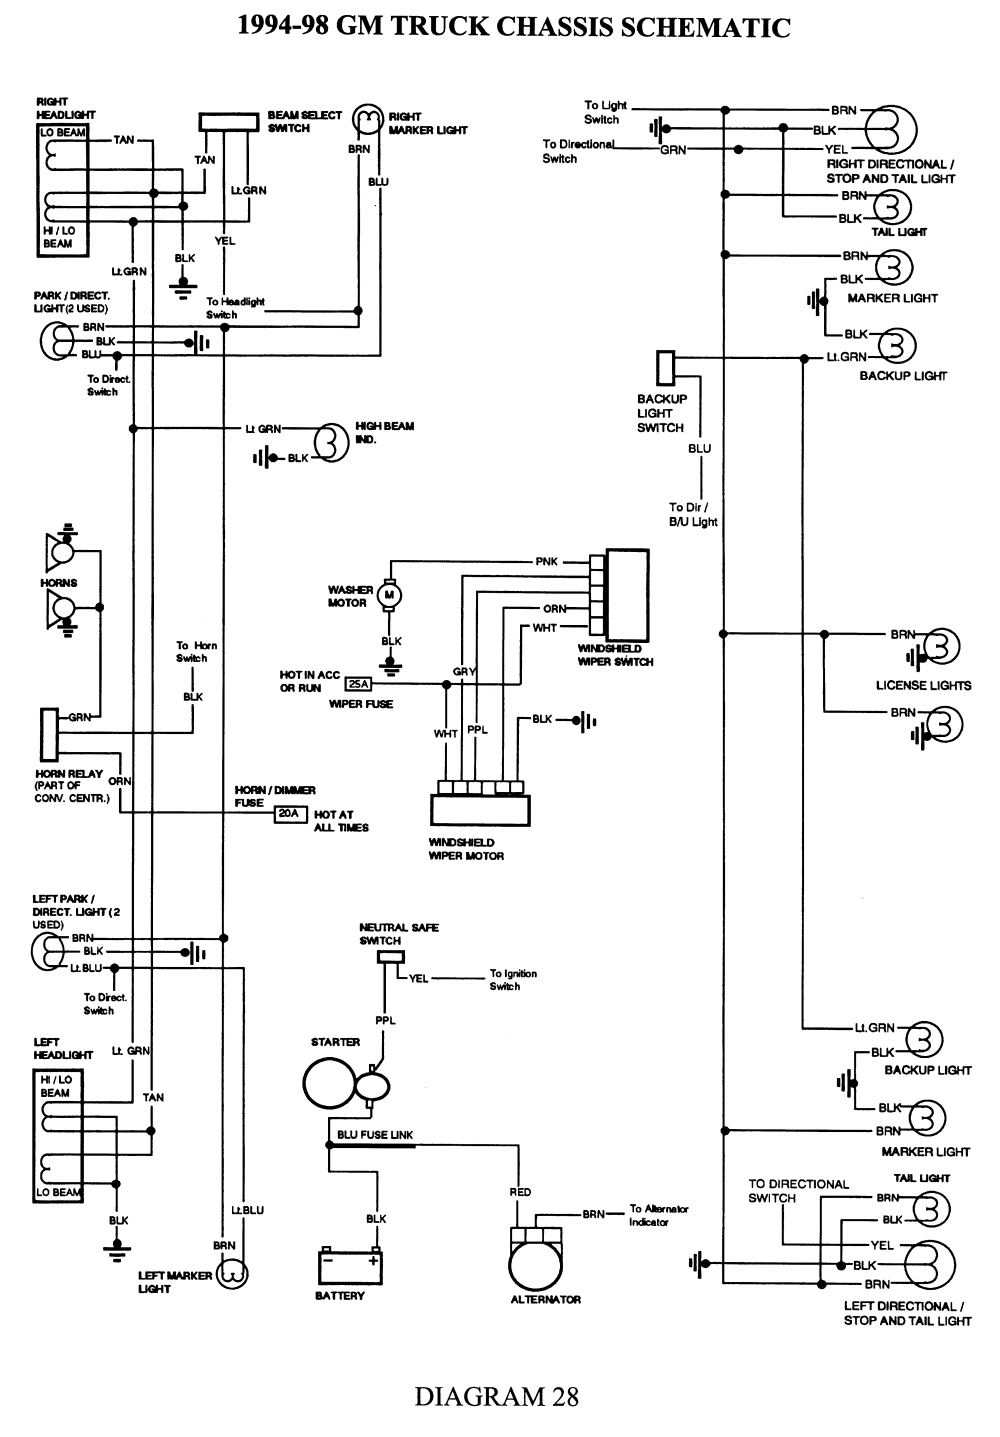 1995 k2500 gm headlight switch wiring diagram basic wiring diagram u2022 rh rnetcomputer co Basic Headlight Wiring Diagram Basic Headlight Wiring Diagram